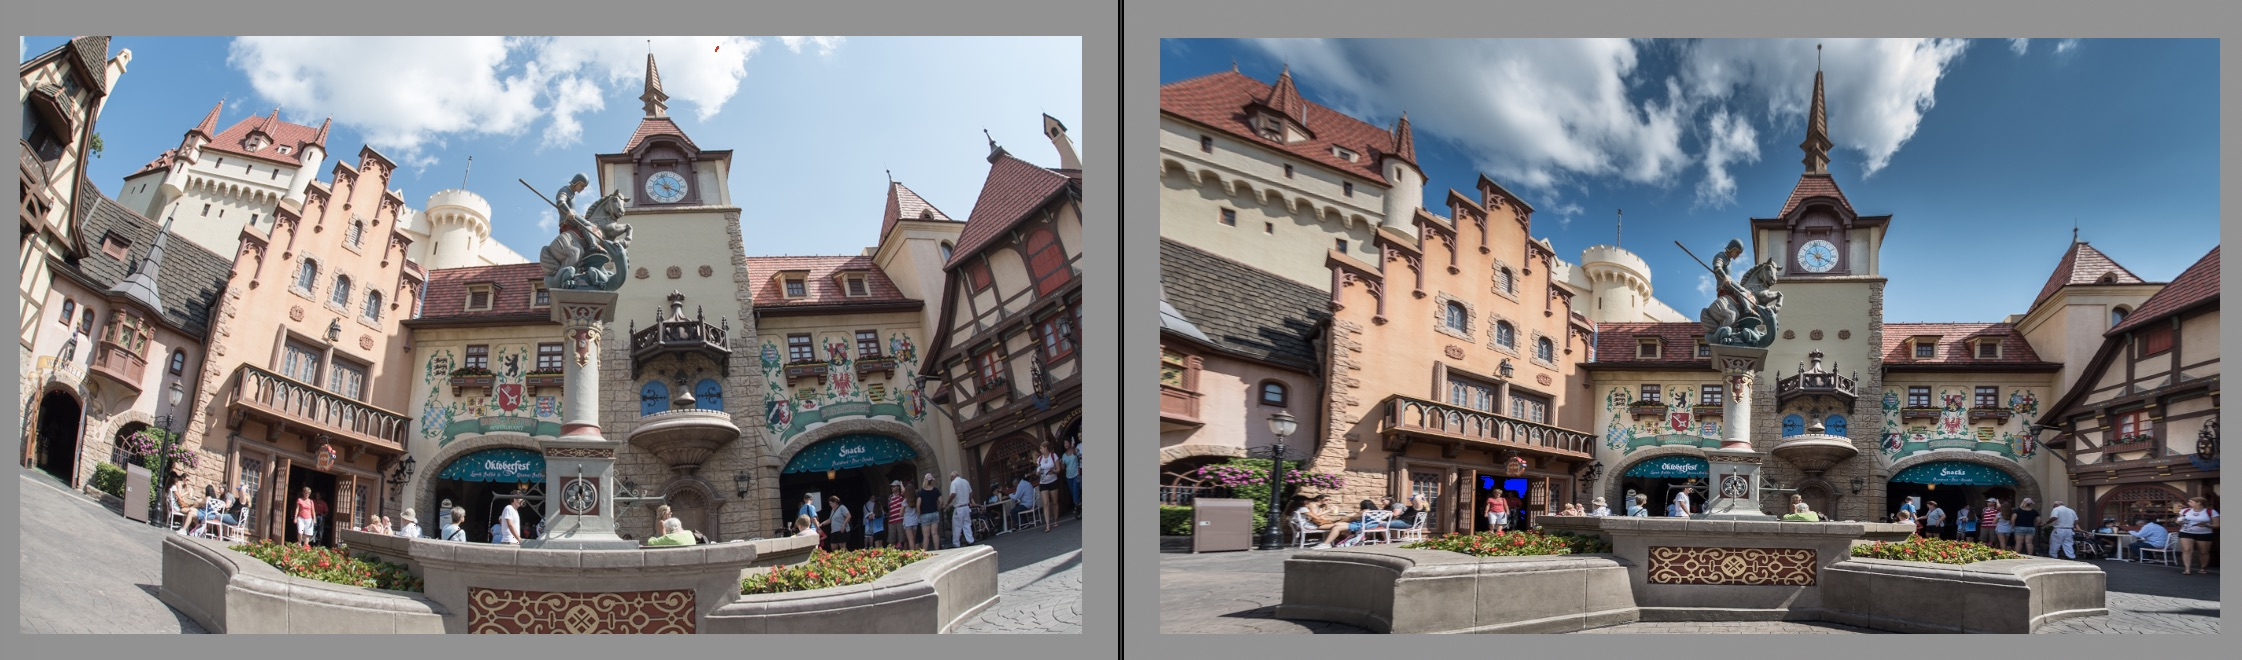 Germany Before and After Photo Editing